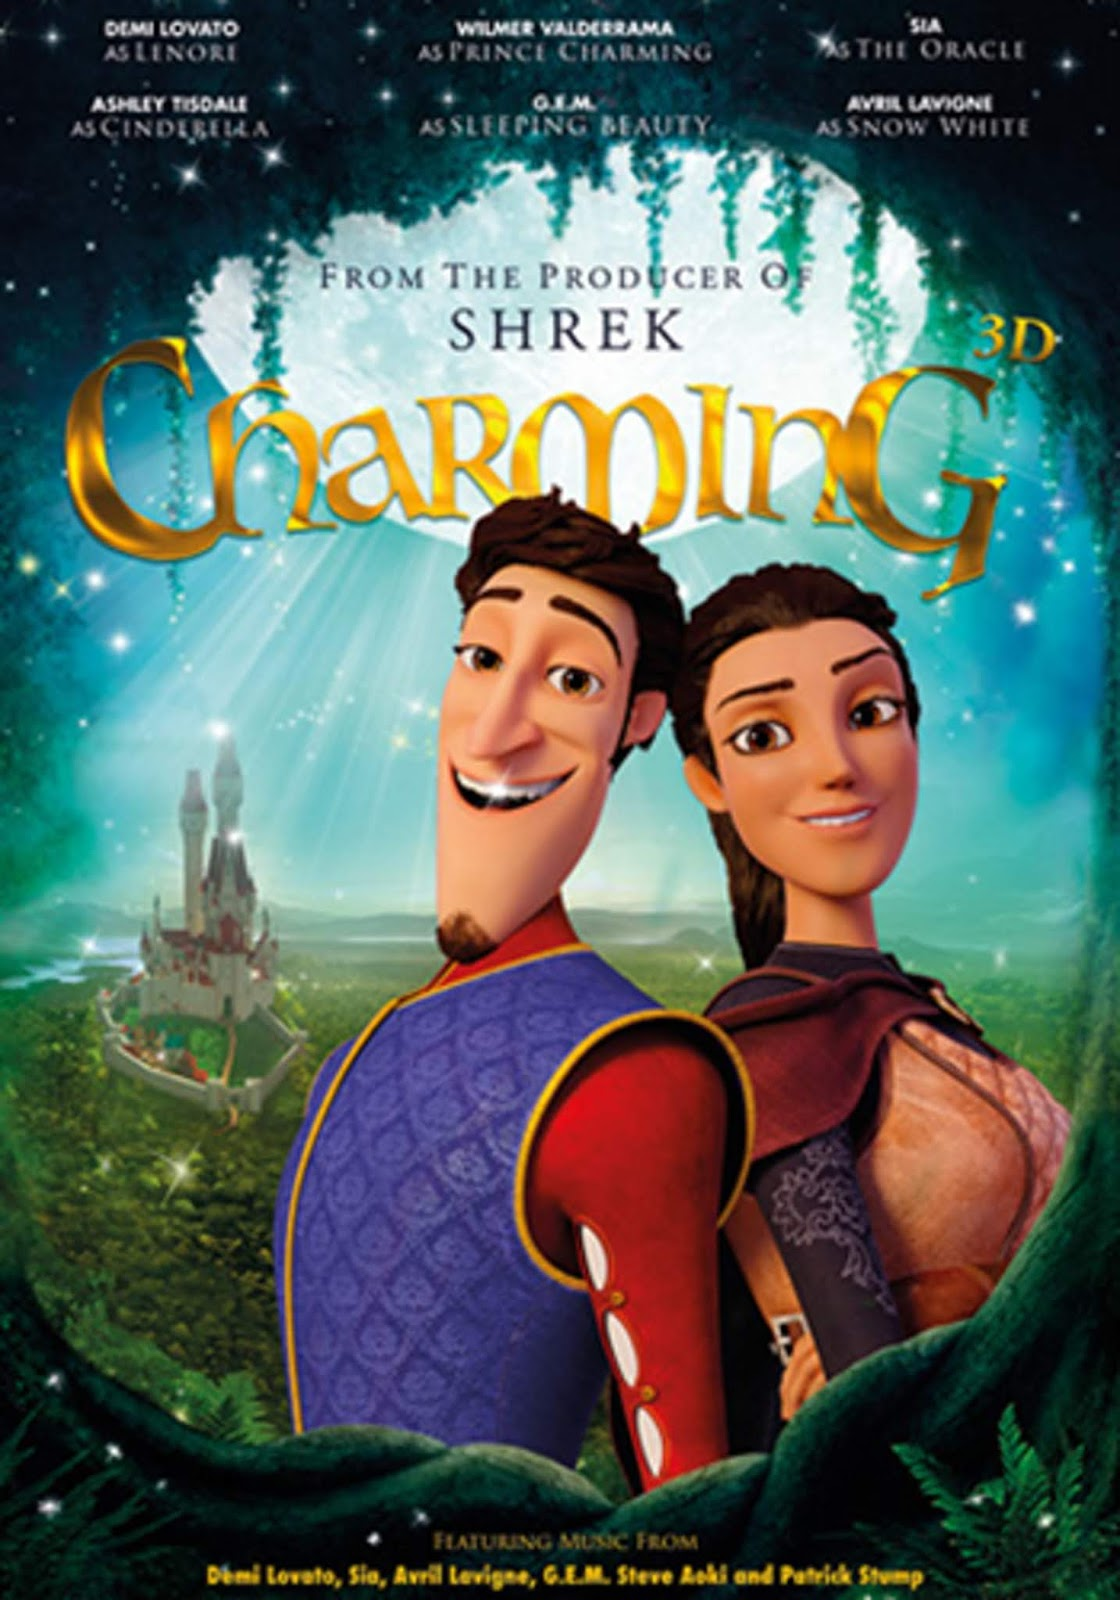 Review: Charming